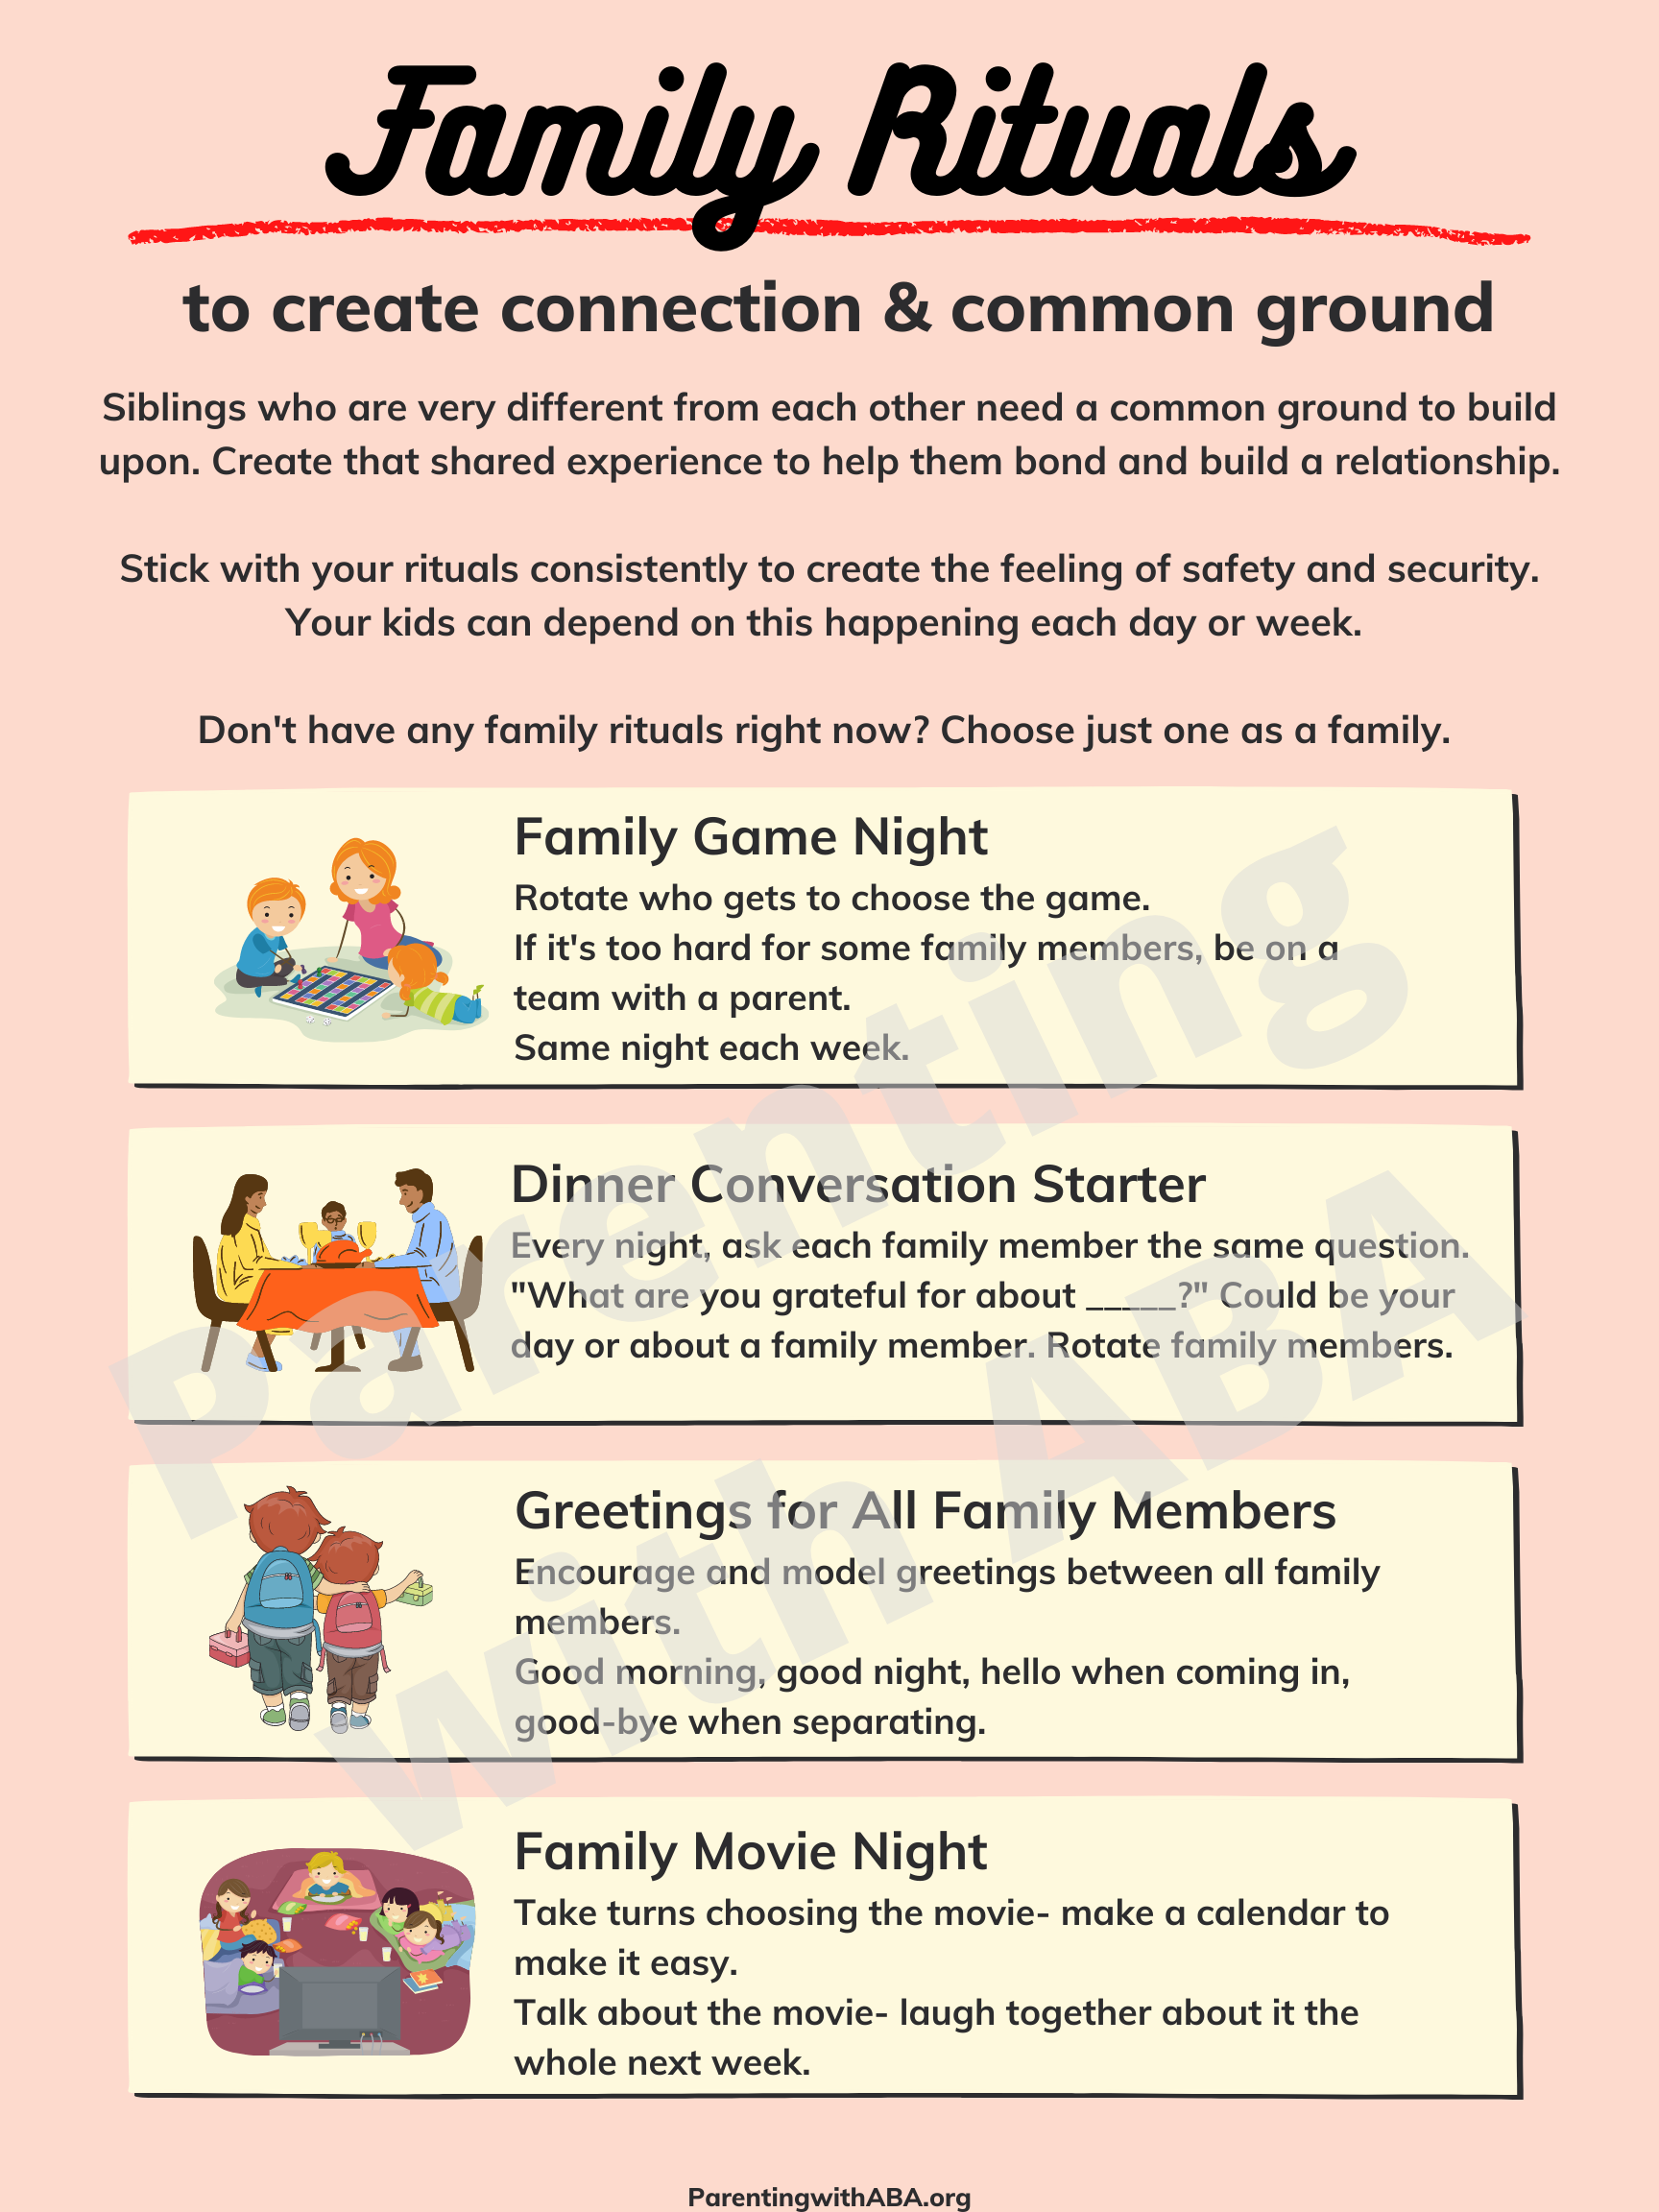 Infographic about the family rituals listed here